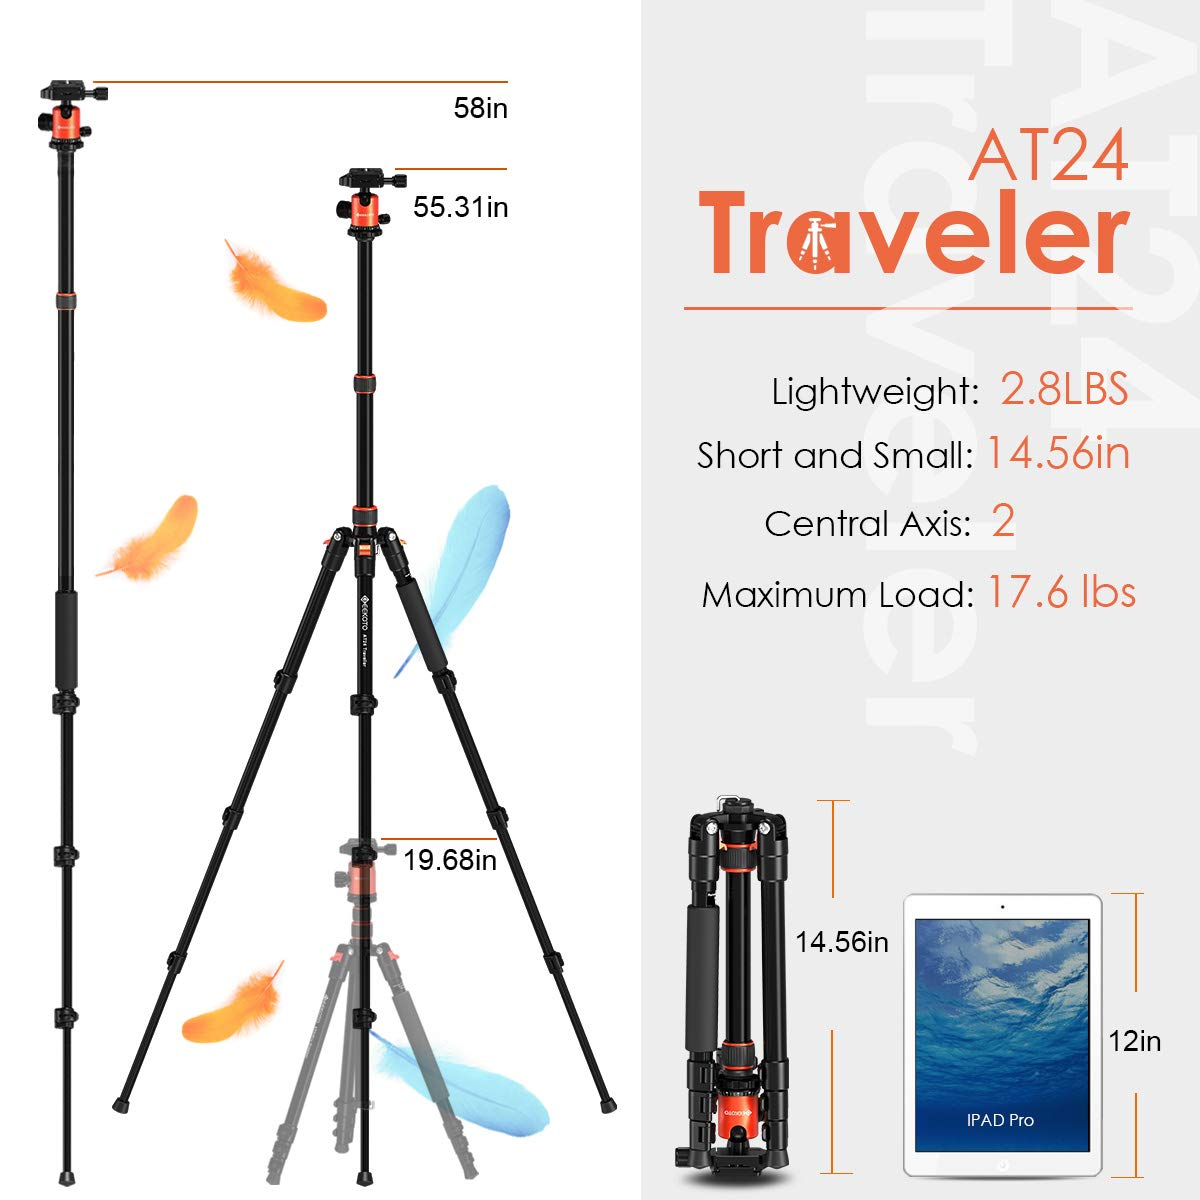 GEEKOTO 58'' Ultra Compact Lightweight Aluminum Tripod with 360° Panorama Ball Head for DSLR, Monopod, Tripod for OSMO, Ideal for Vlog, Travel and Work by GEEKOTO